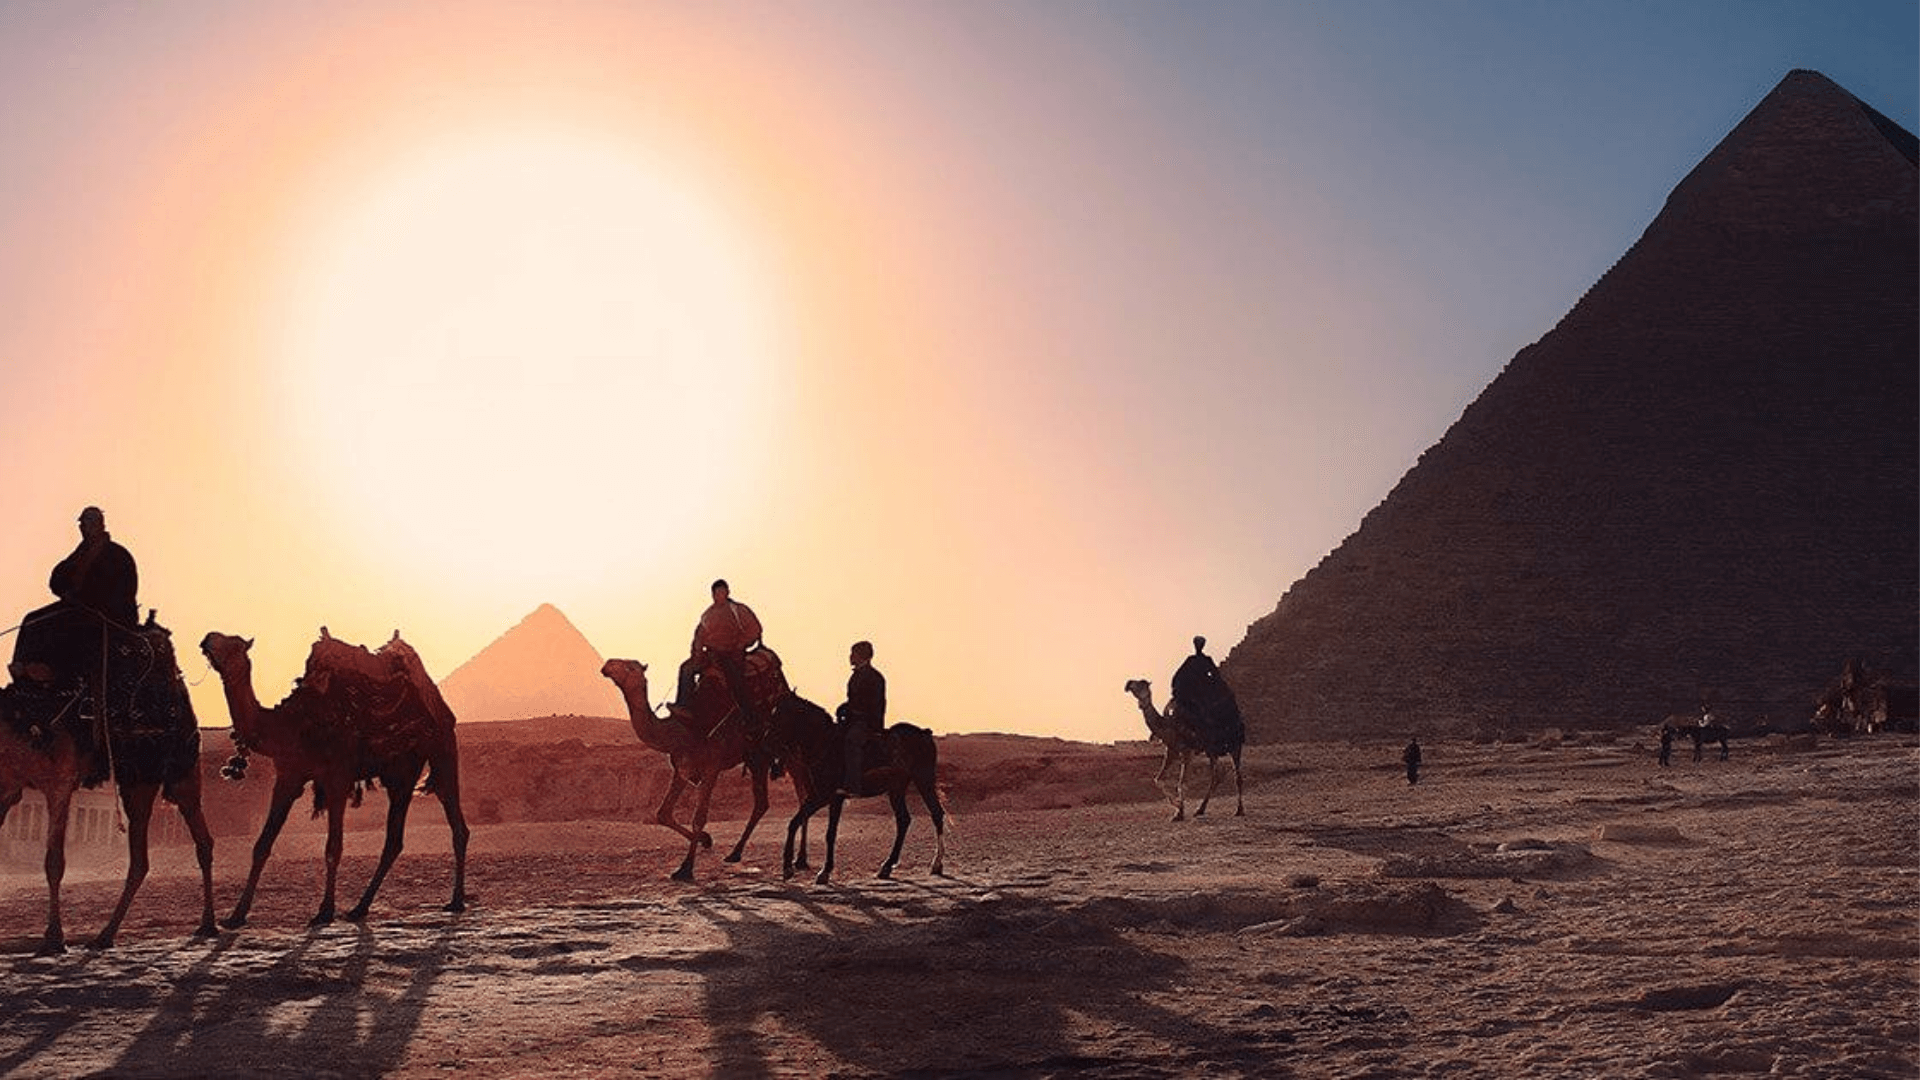 Virtual Worlds to release limited-edition NFTs of Egyptian monuments